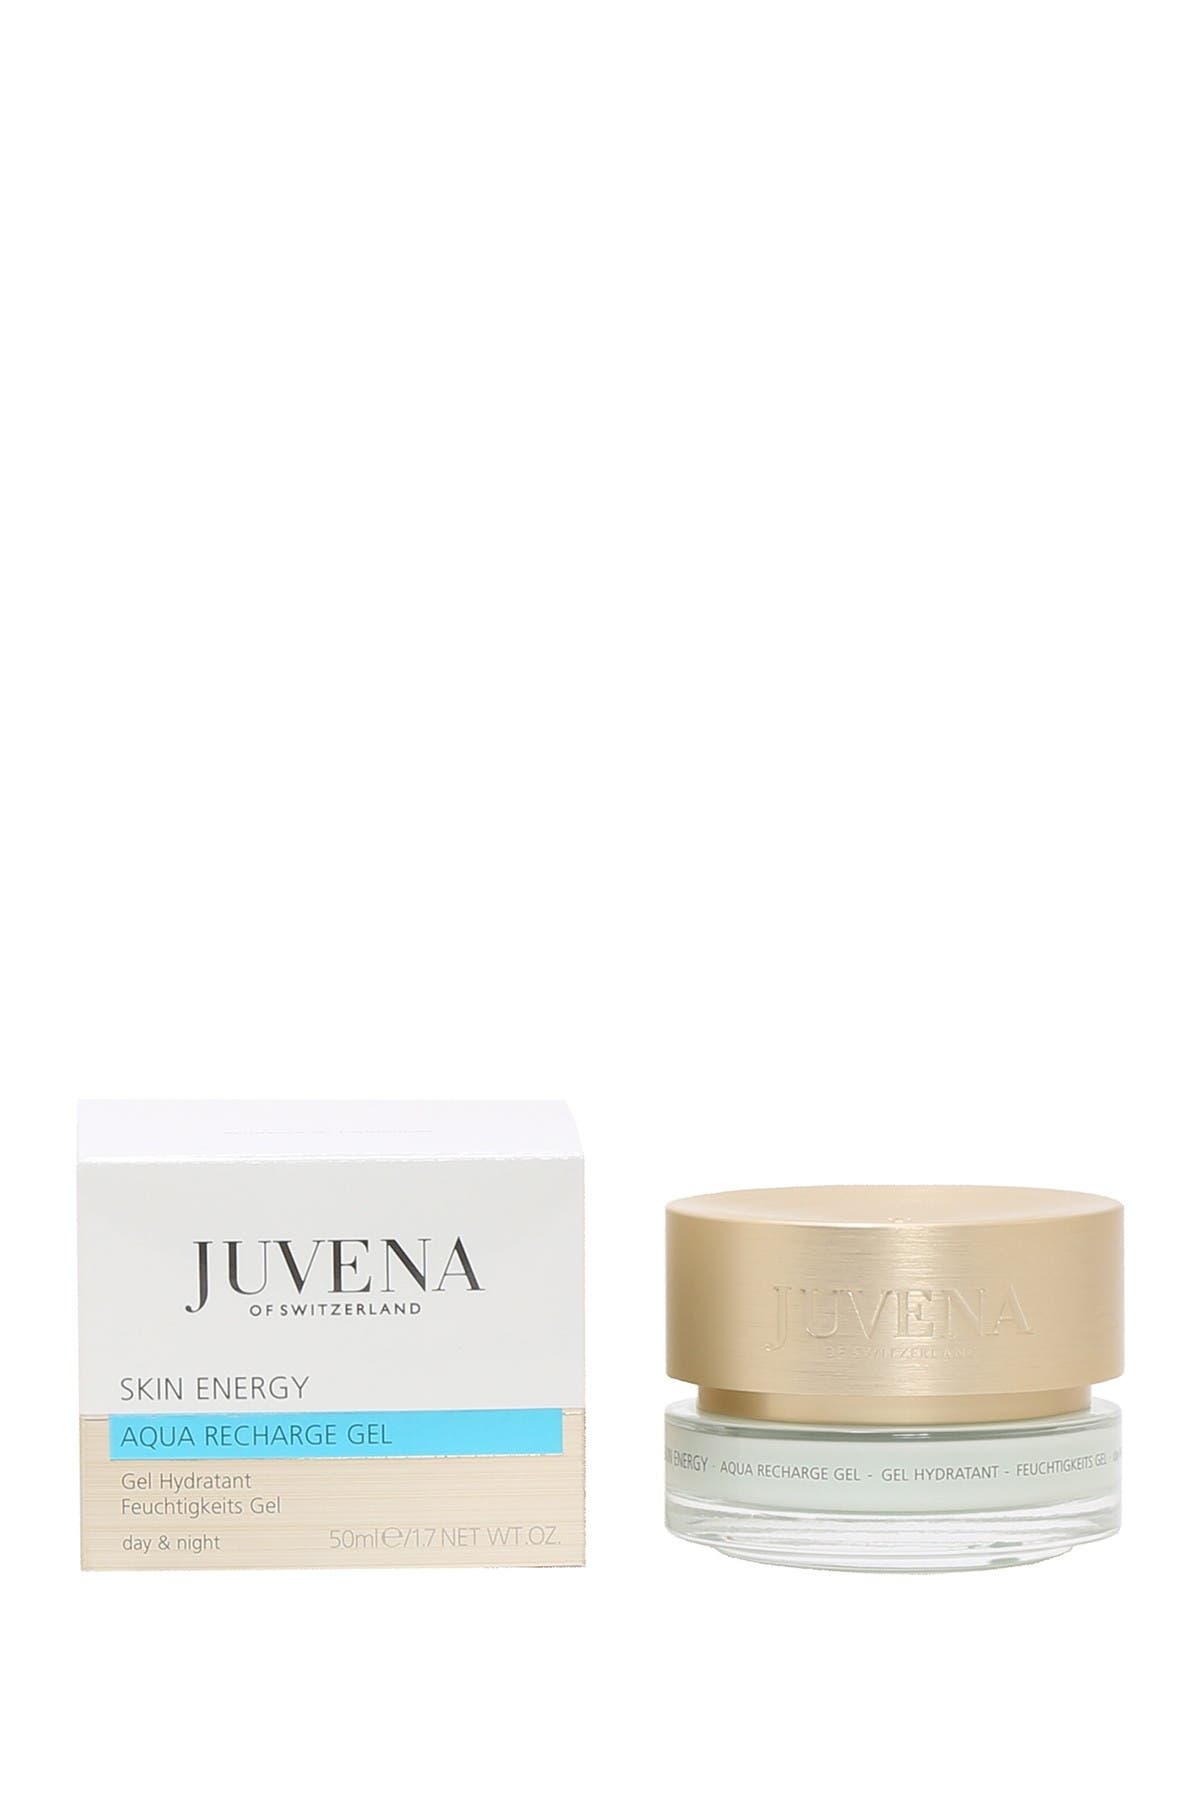 Image of Juvena Aqua Recharge Gel Jar